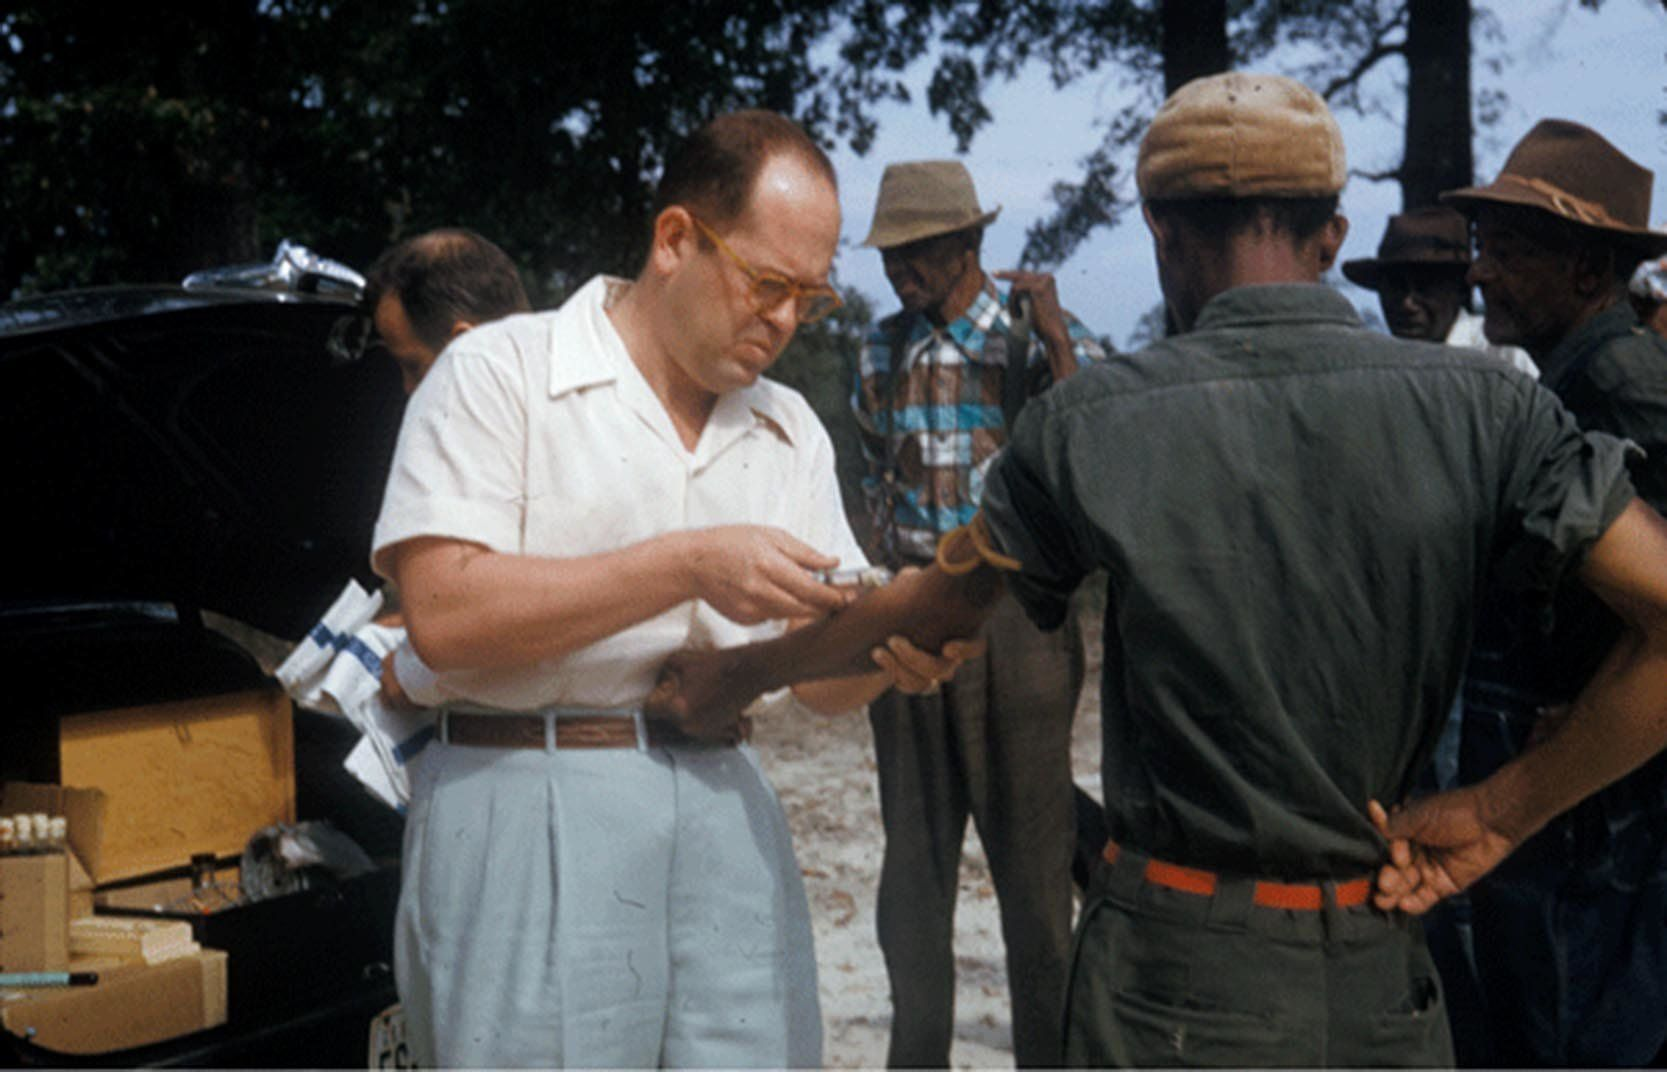 These Archival Photos Show The Faces Of The Tuskegee Experiment ...